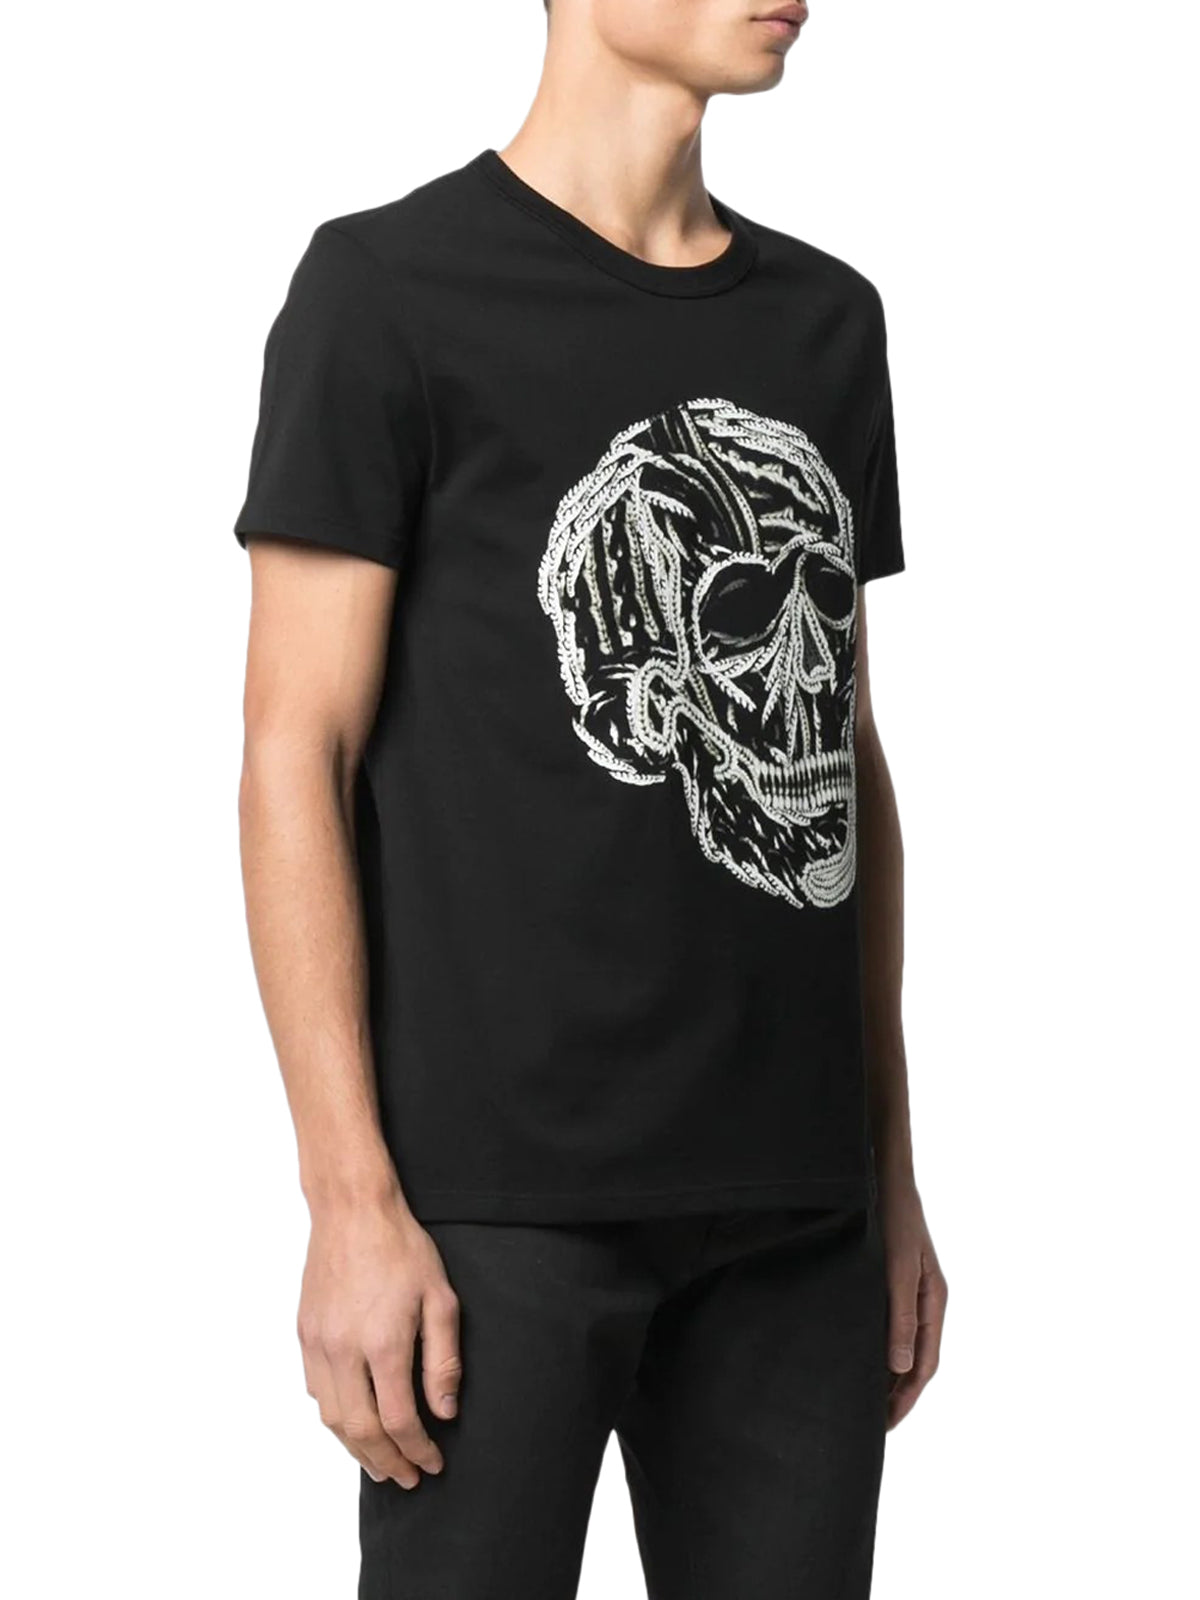 embroidered skull-print T-shirt